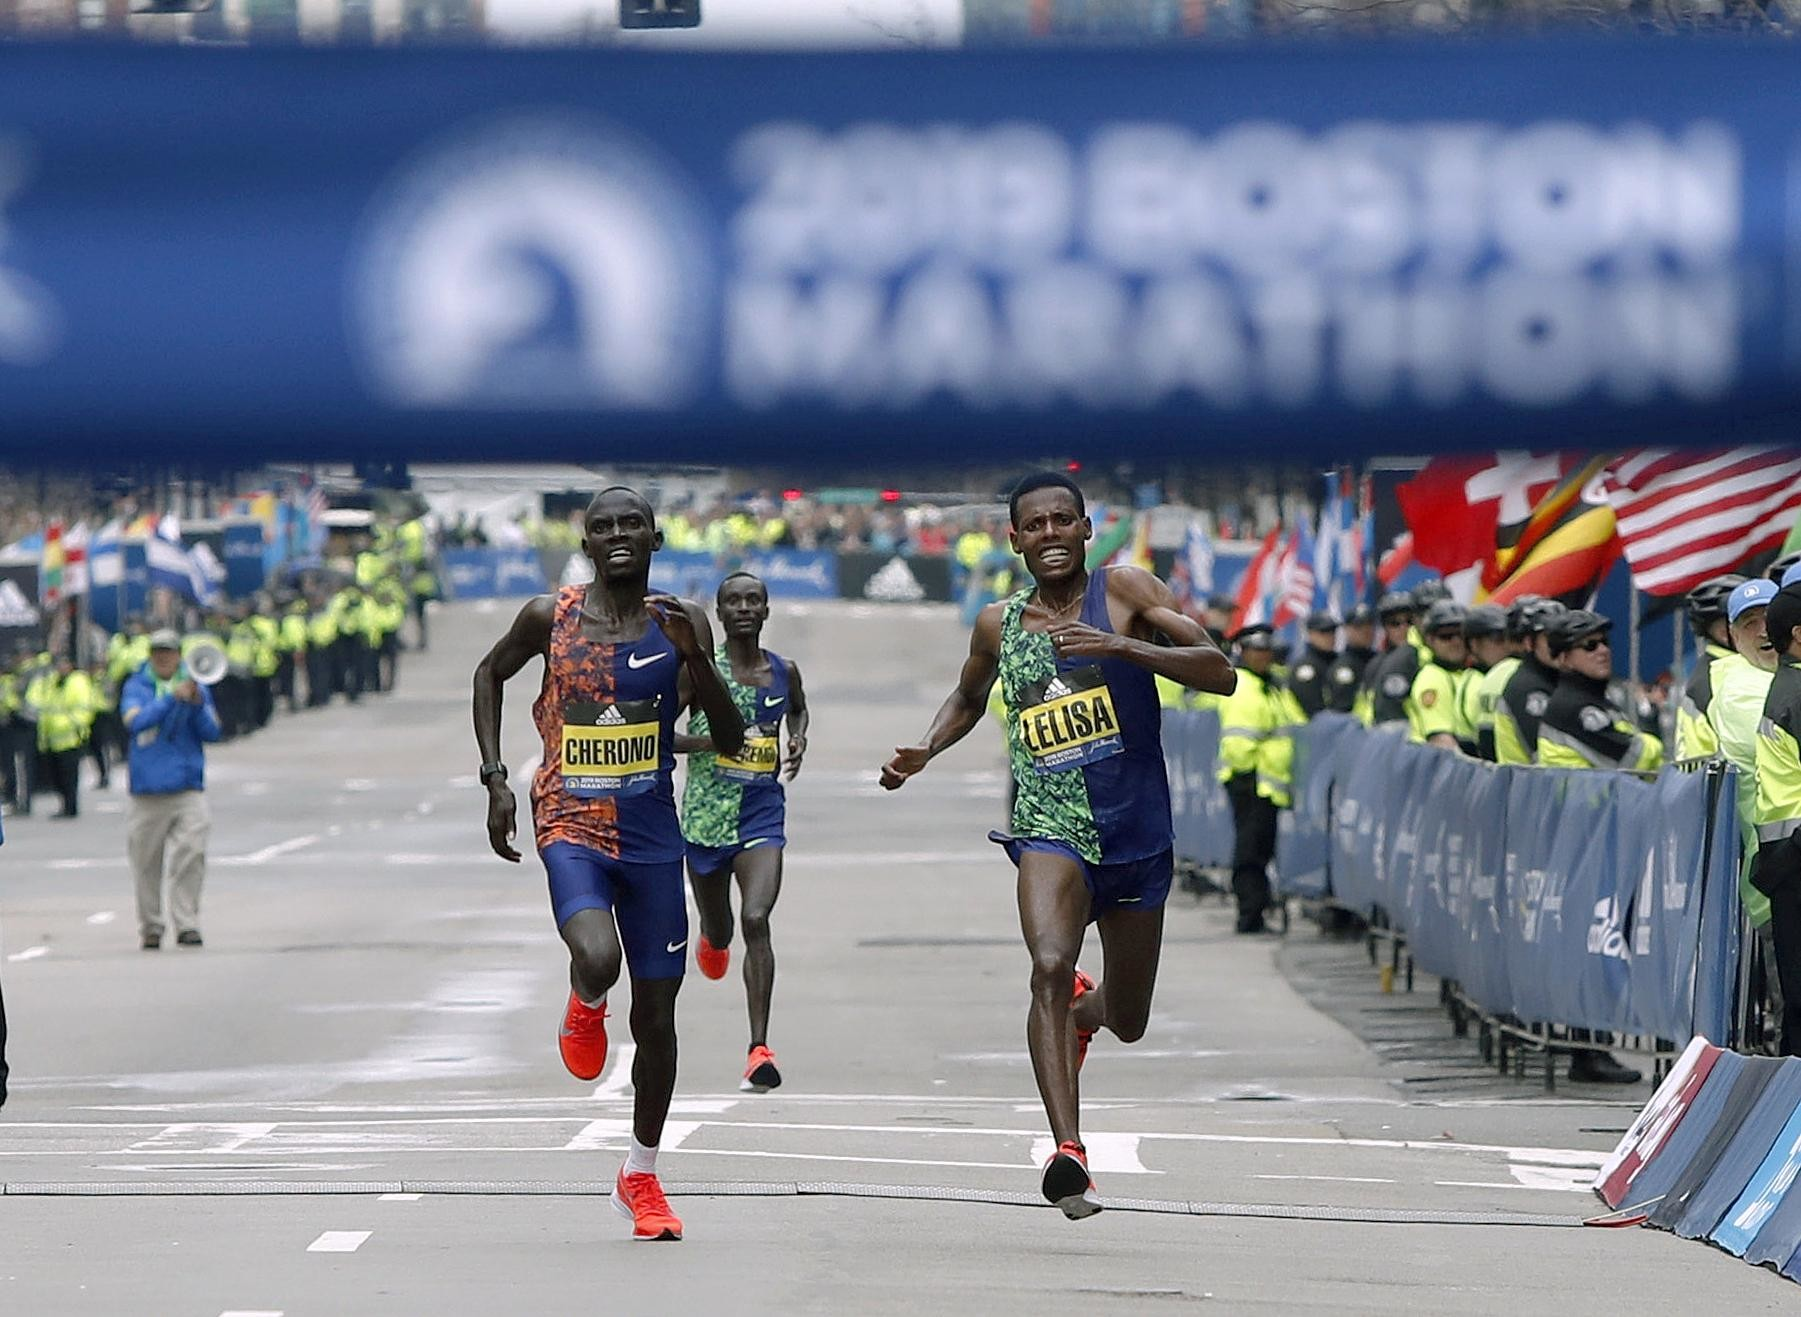 Boston marathon champion Lawrence Cherono has confirmed he will compete in Chicago Marathon against Britain's Mo Farah